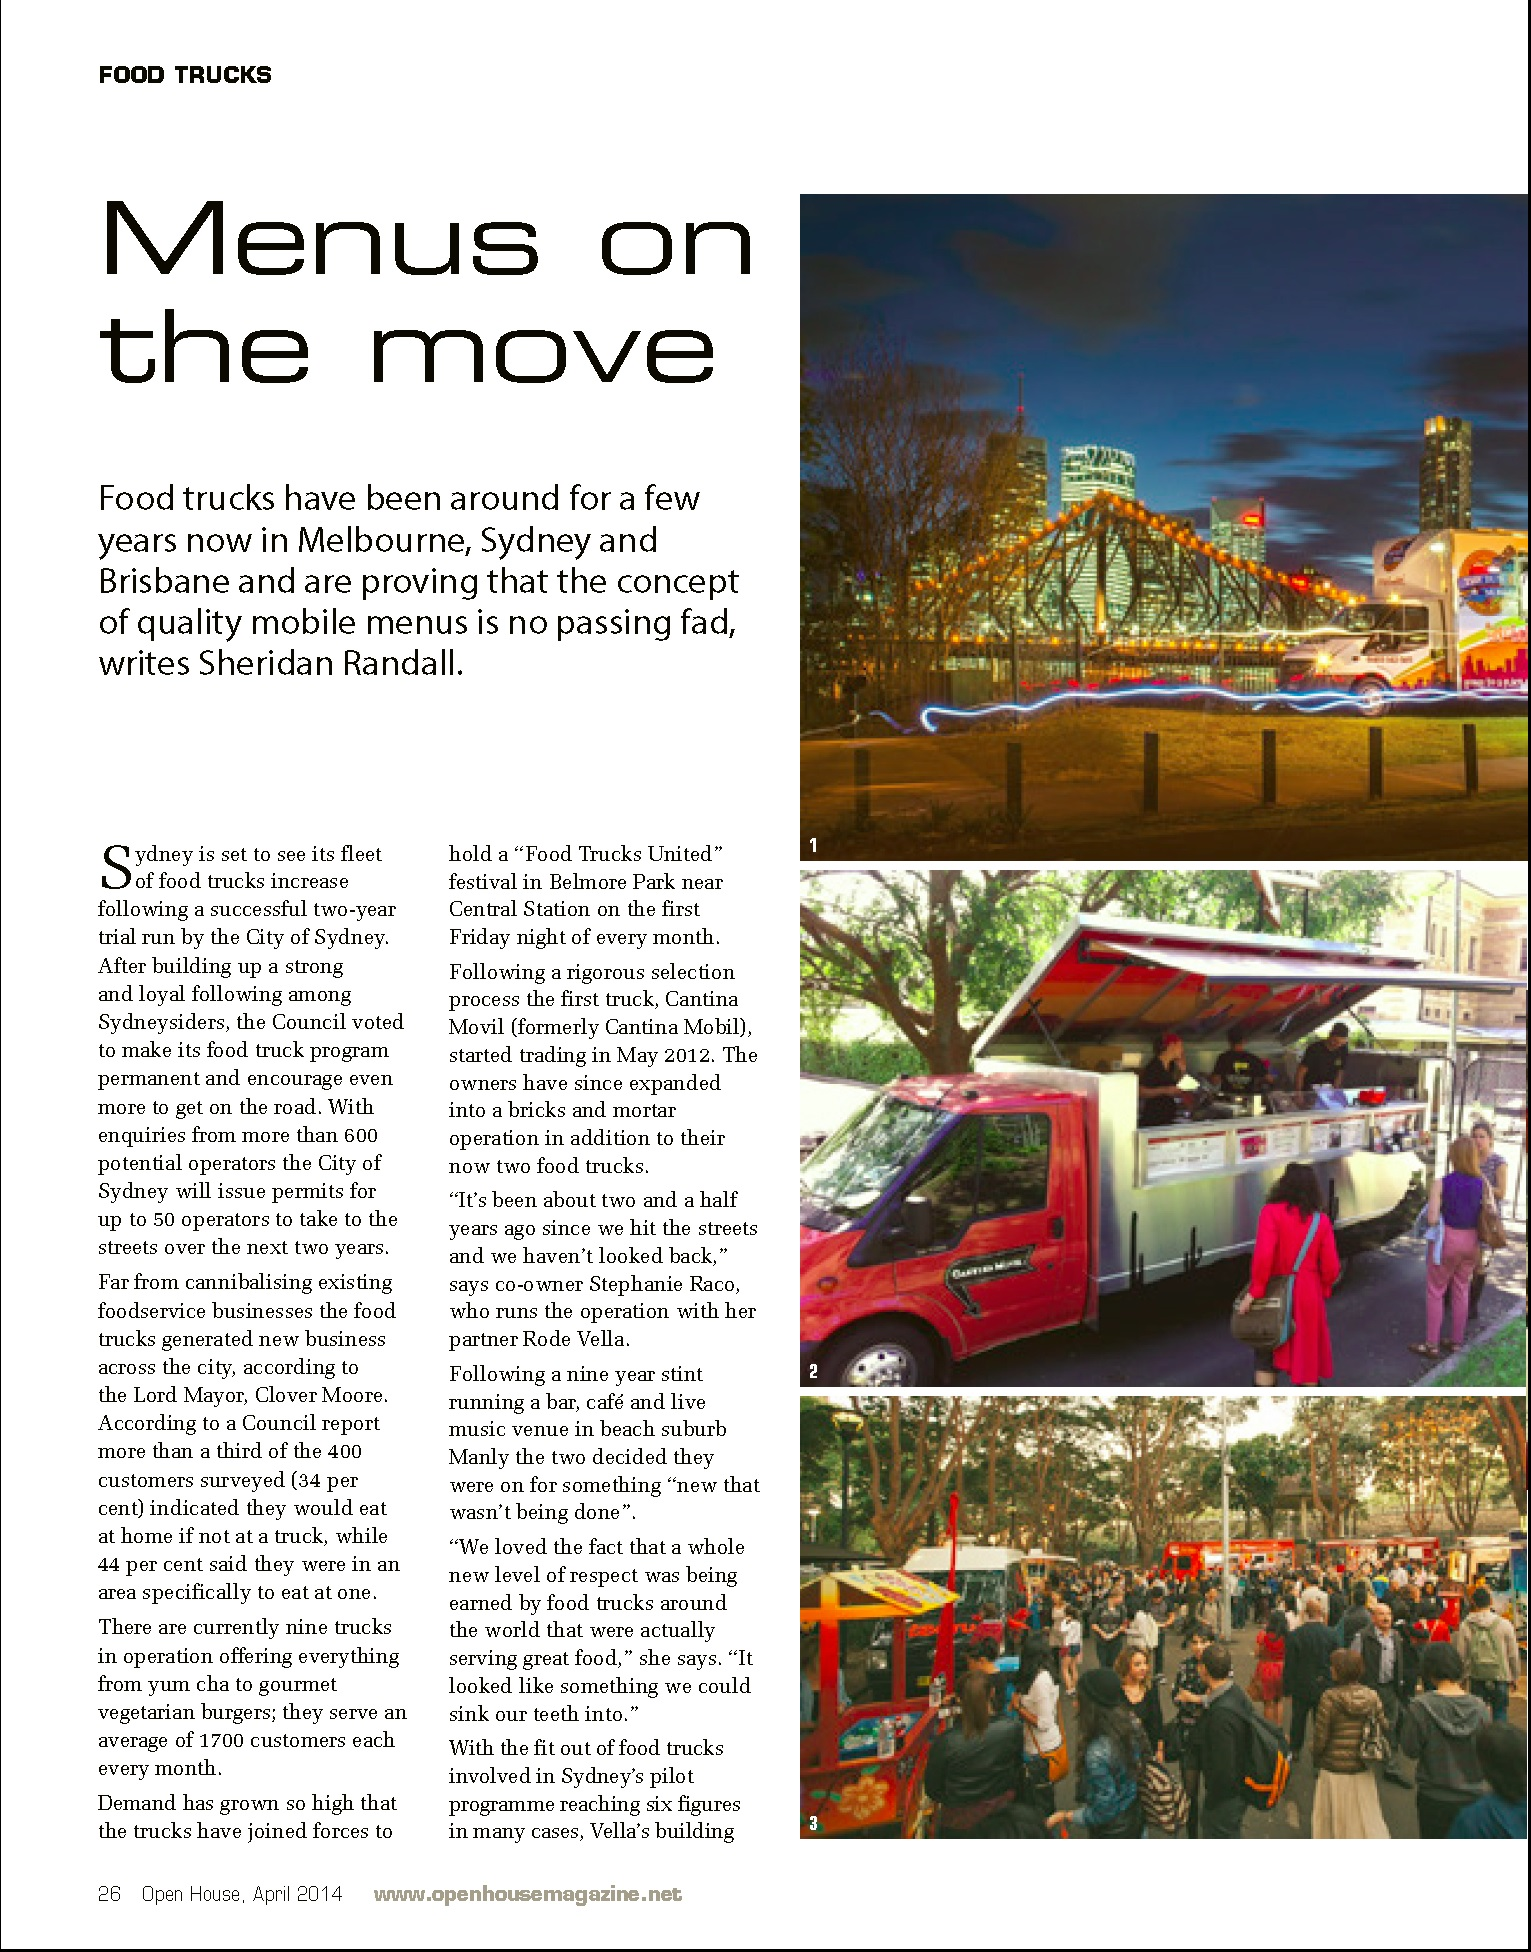 Open House Food Service Magazine PG1